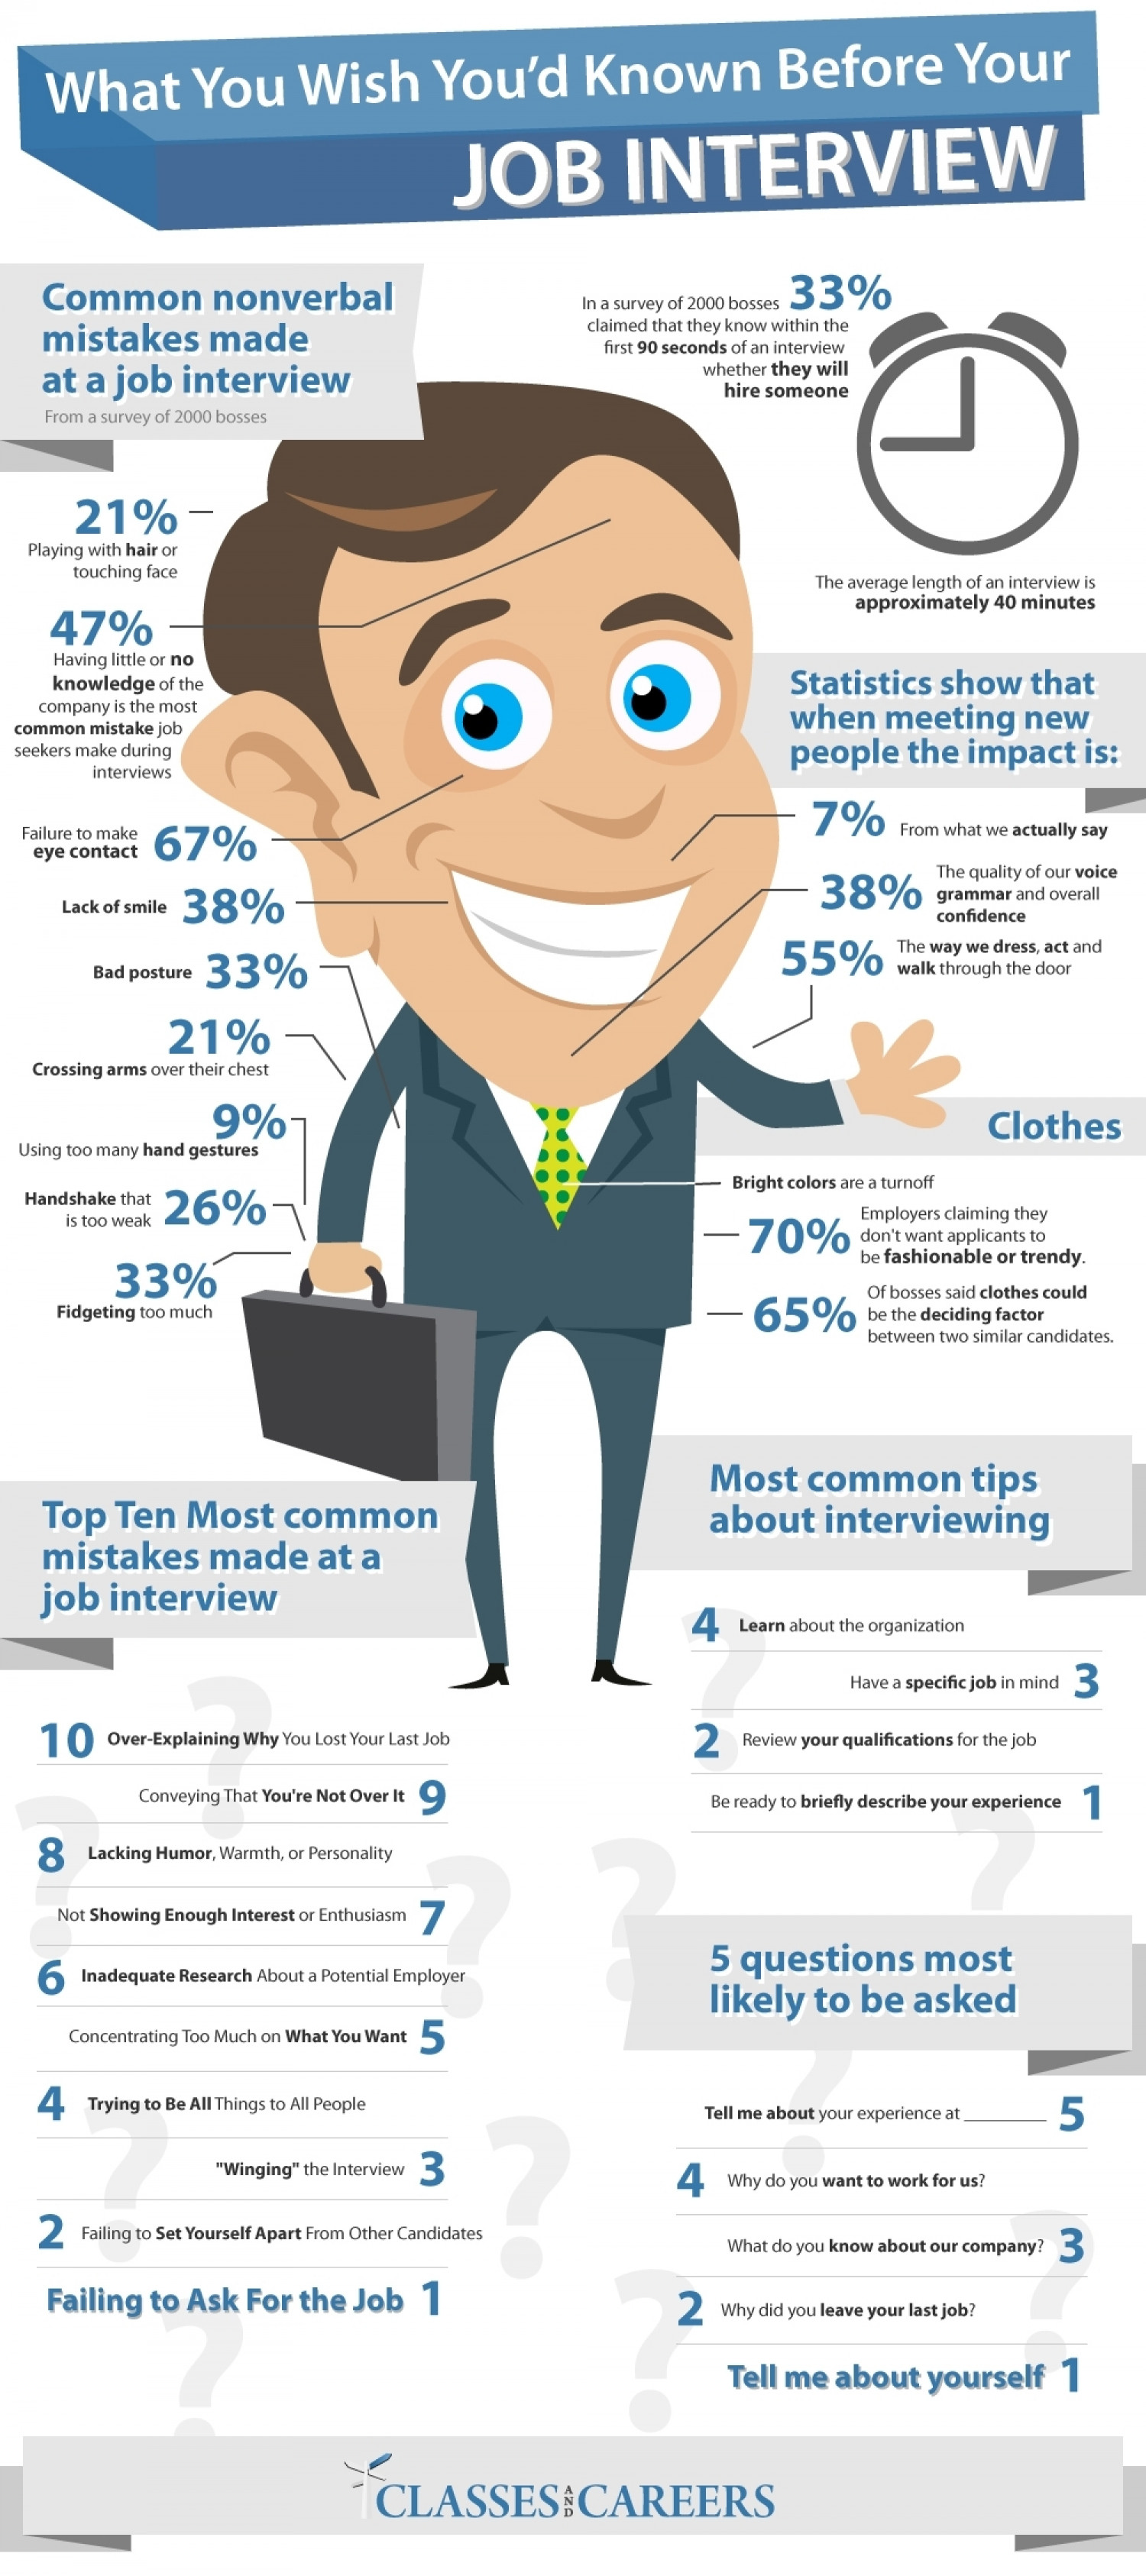 what did you like most about your job